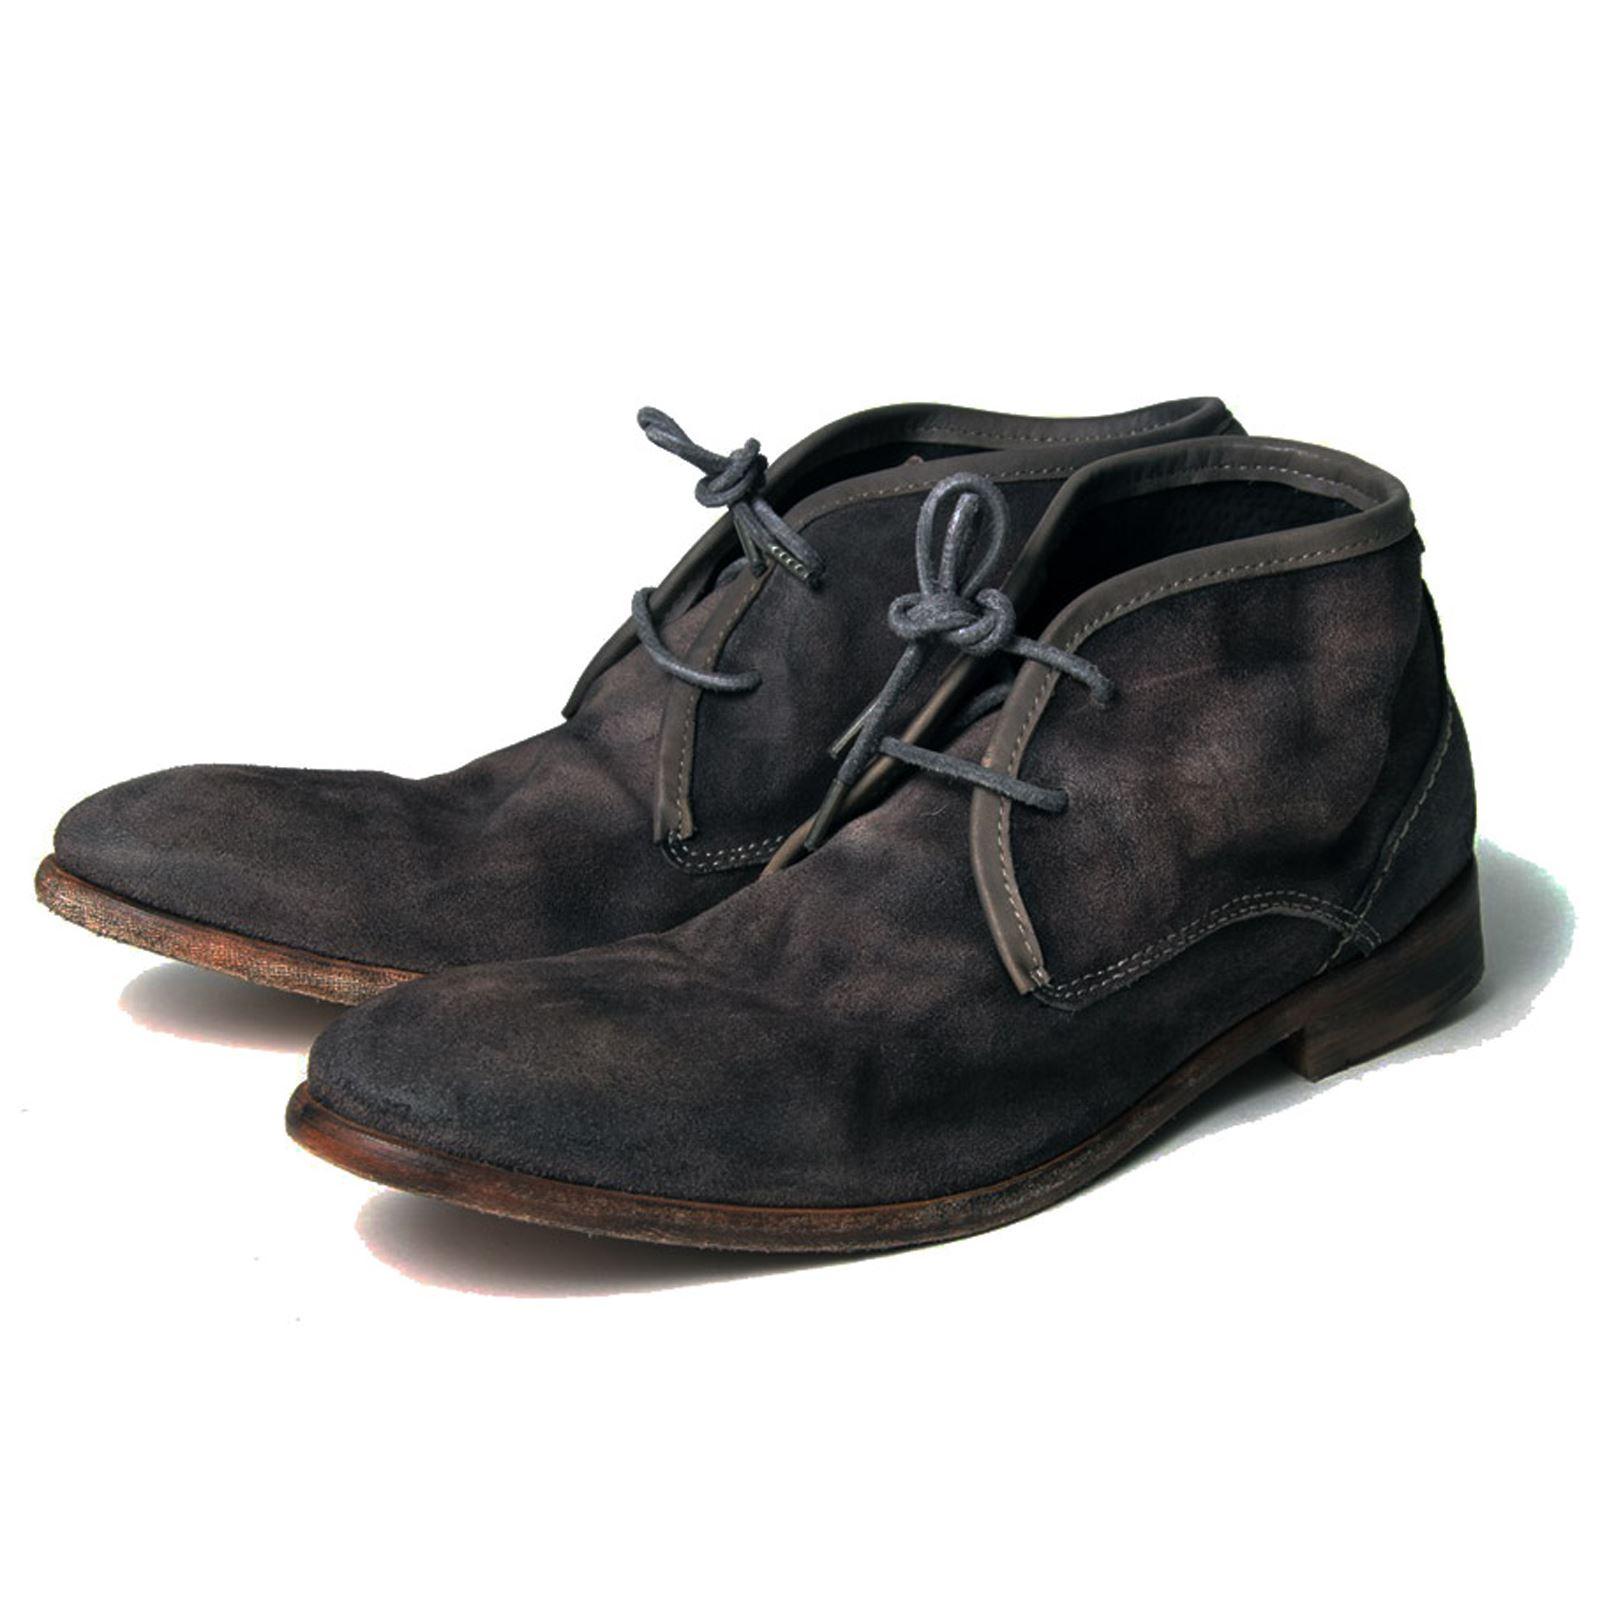 h by hudson boots cruise grey suede mens chukka boot